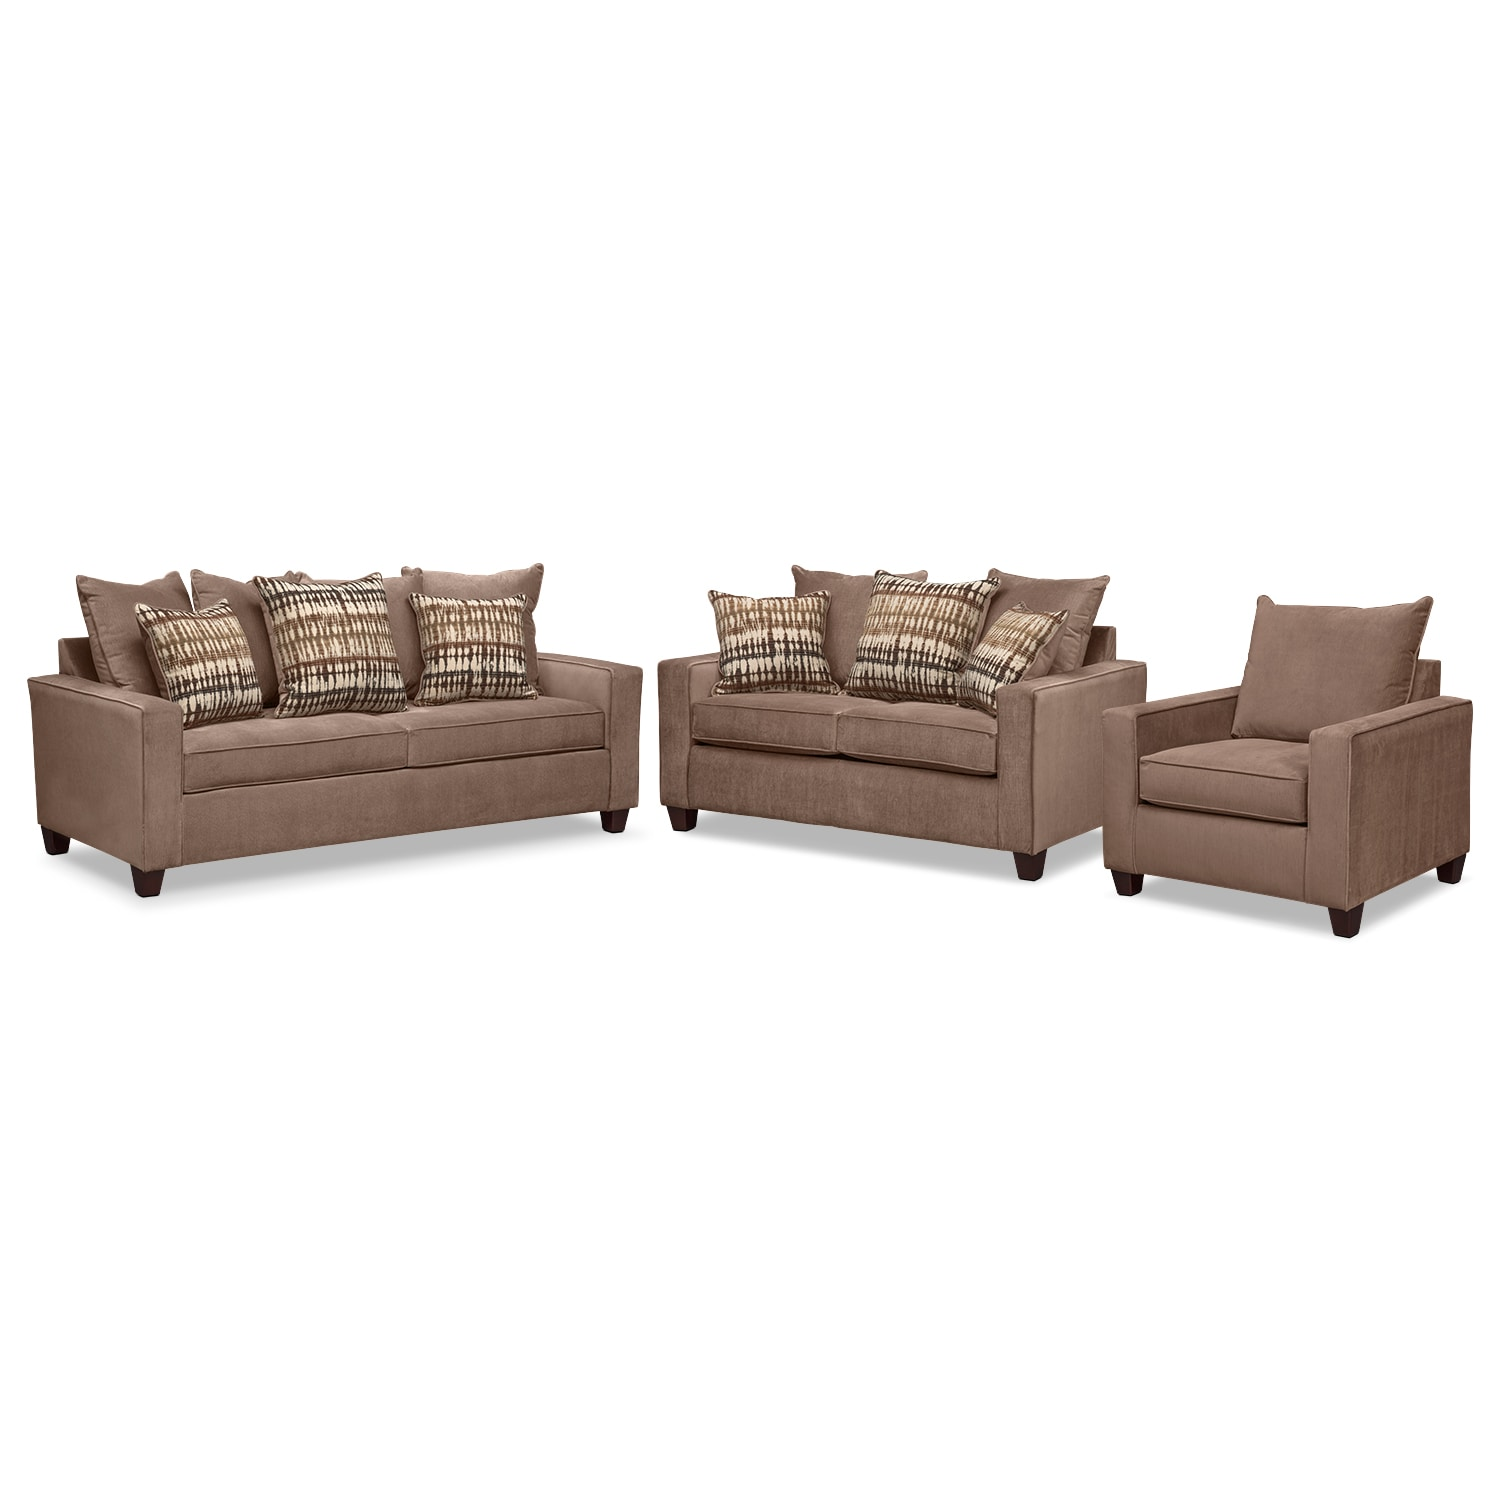 Living Room Furniture - Bryden Sofa, Loveseat and Chair Set - Chocolate